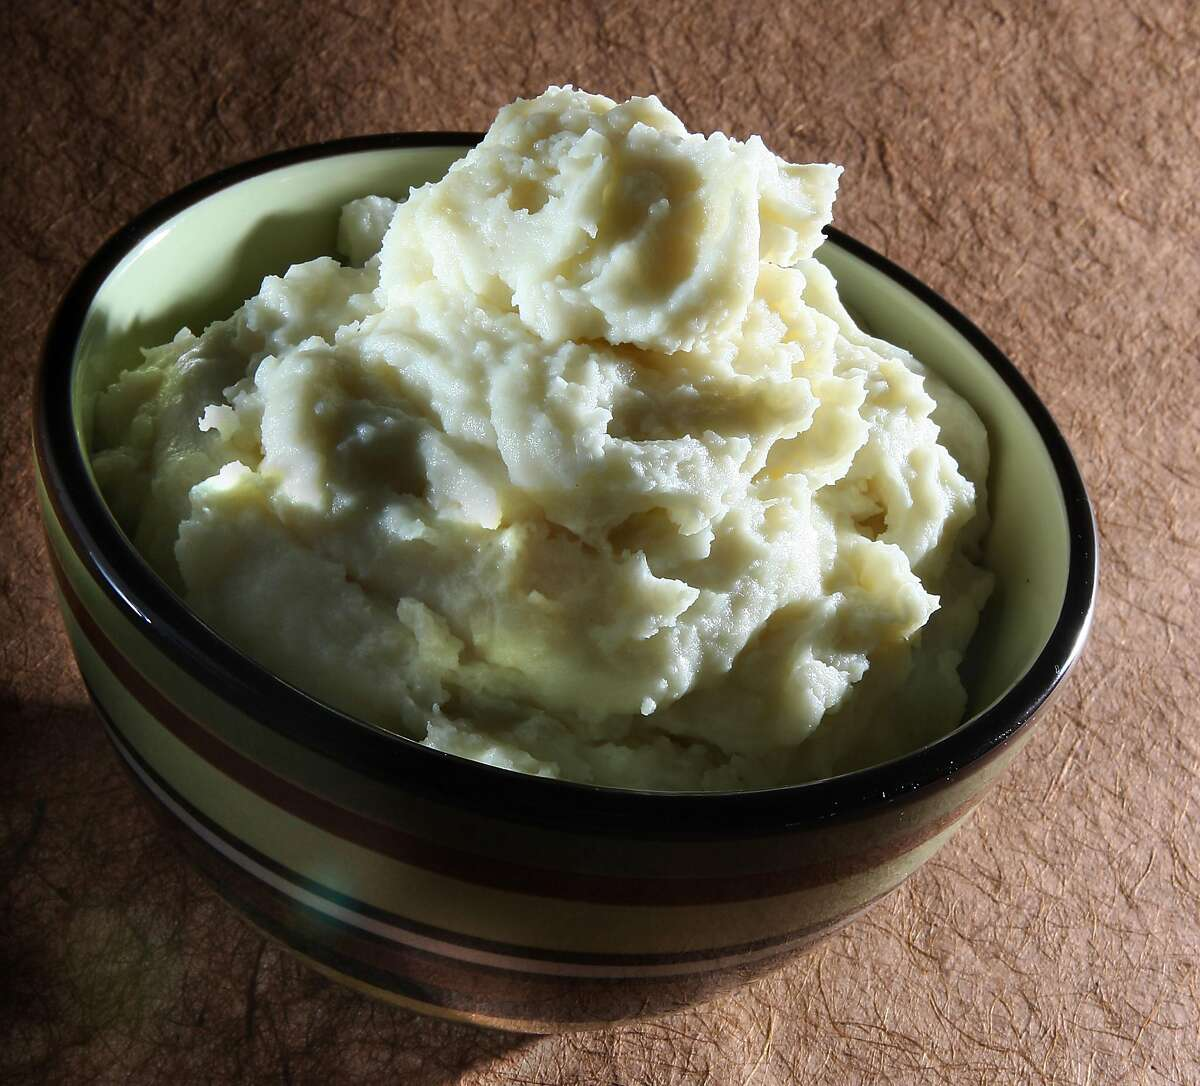 #1 Mashed Potatoes  Whether they're served plain with butter and milk or mixed with a little cream cheese and sprinkled with bacon bits, mashed potatoes are at the top of my list - and the first side to run out in many households.